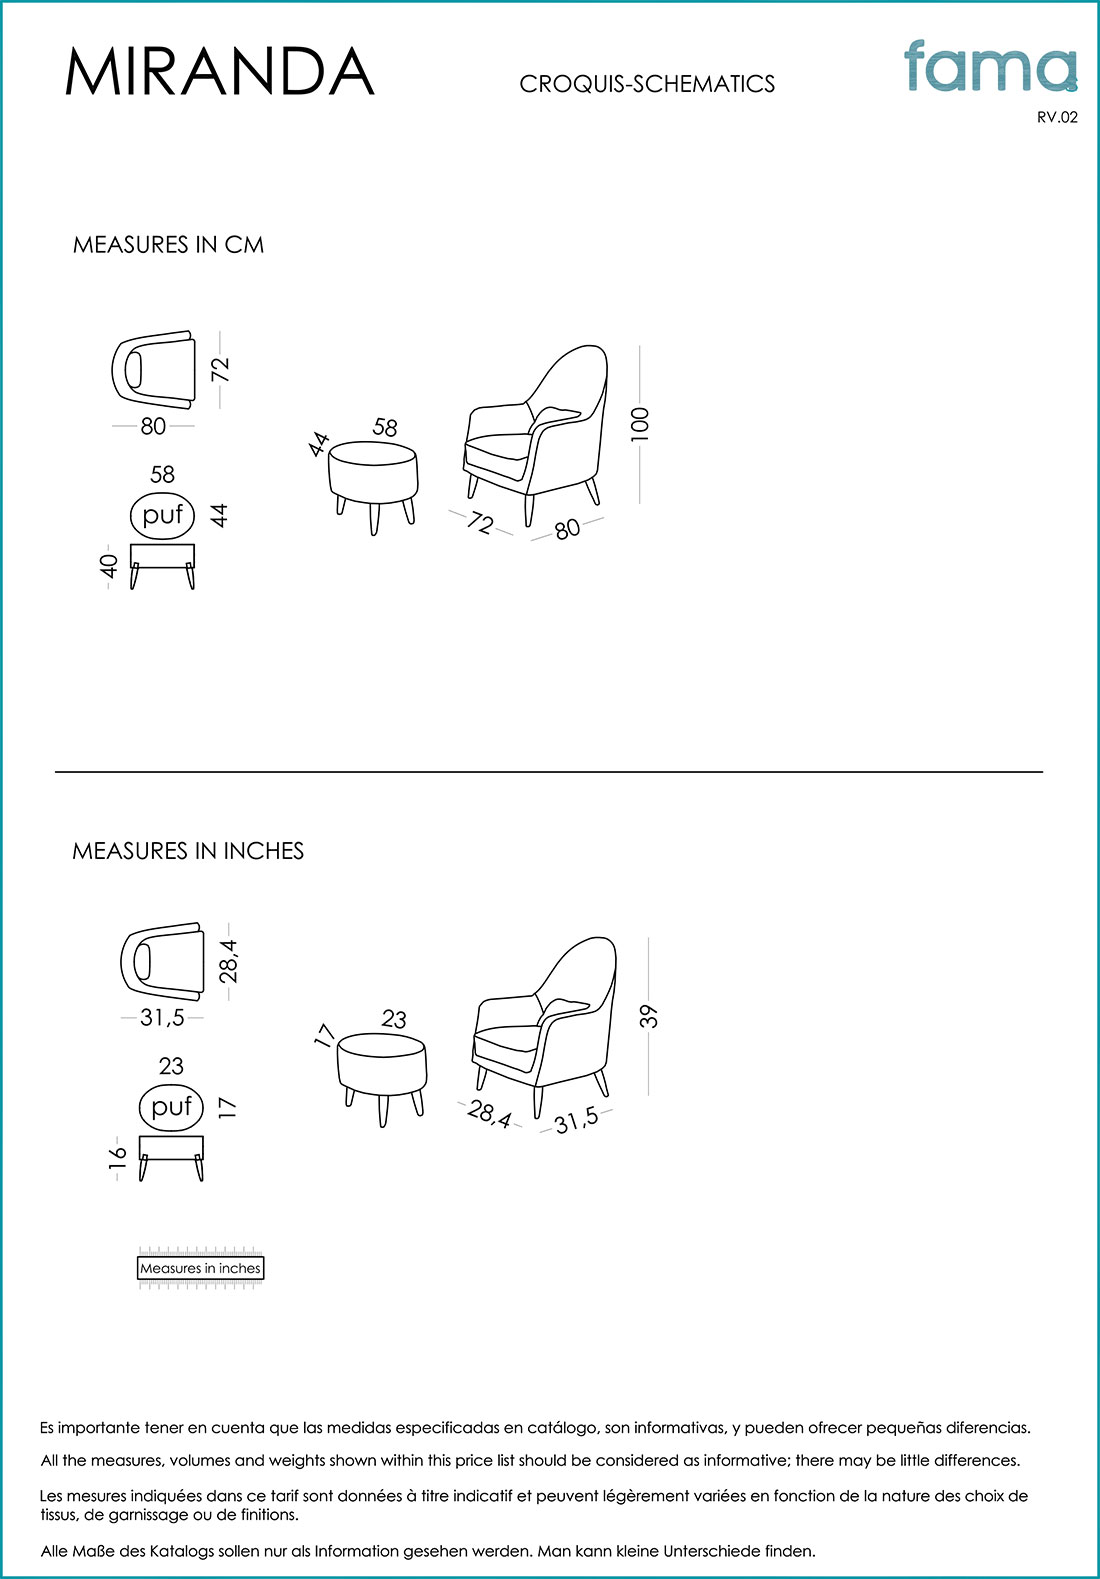 chair-modern-famaliving-montreal-miranda-specification-sheet